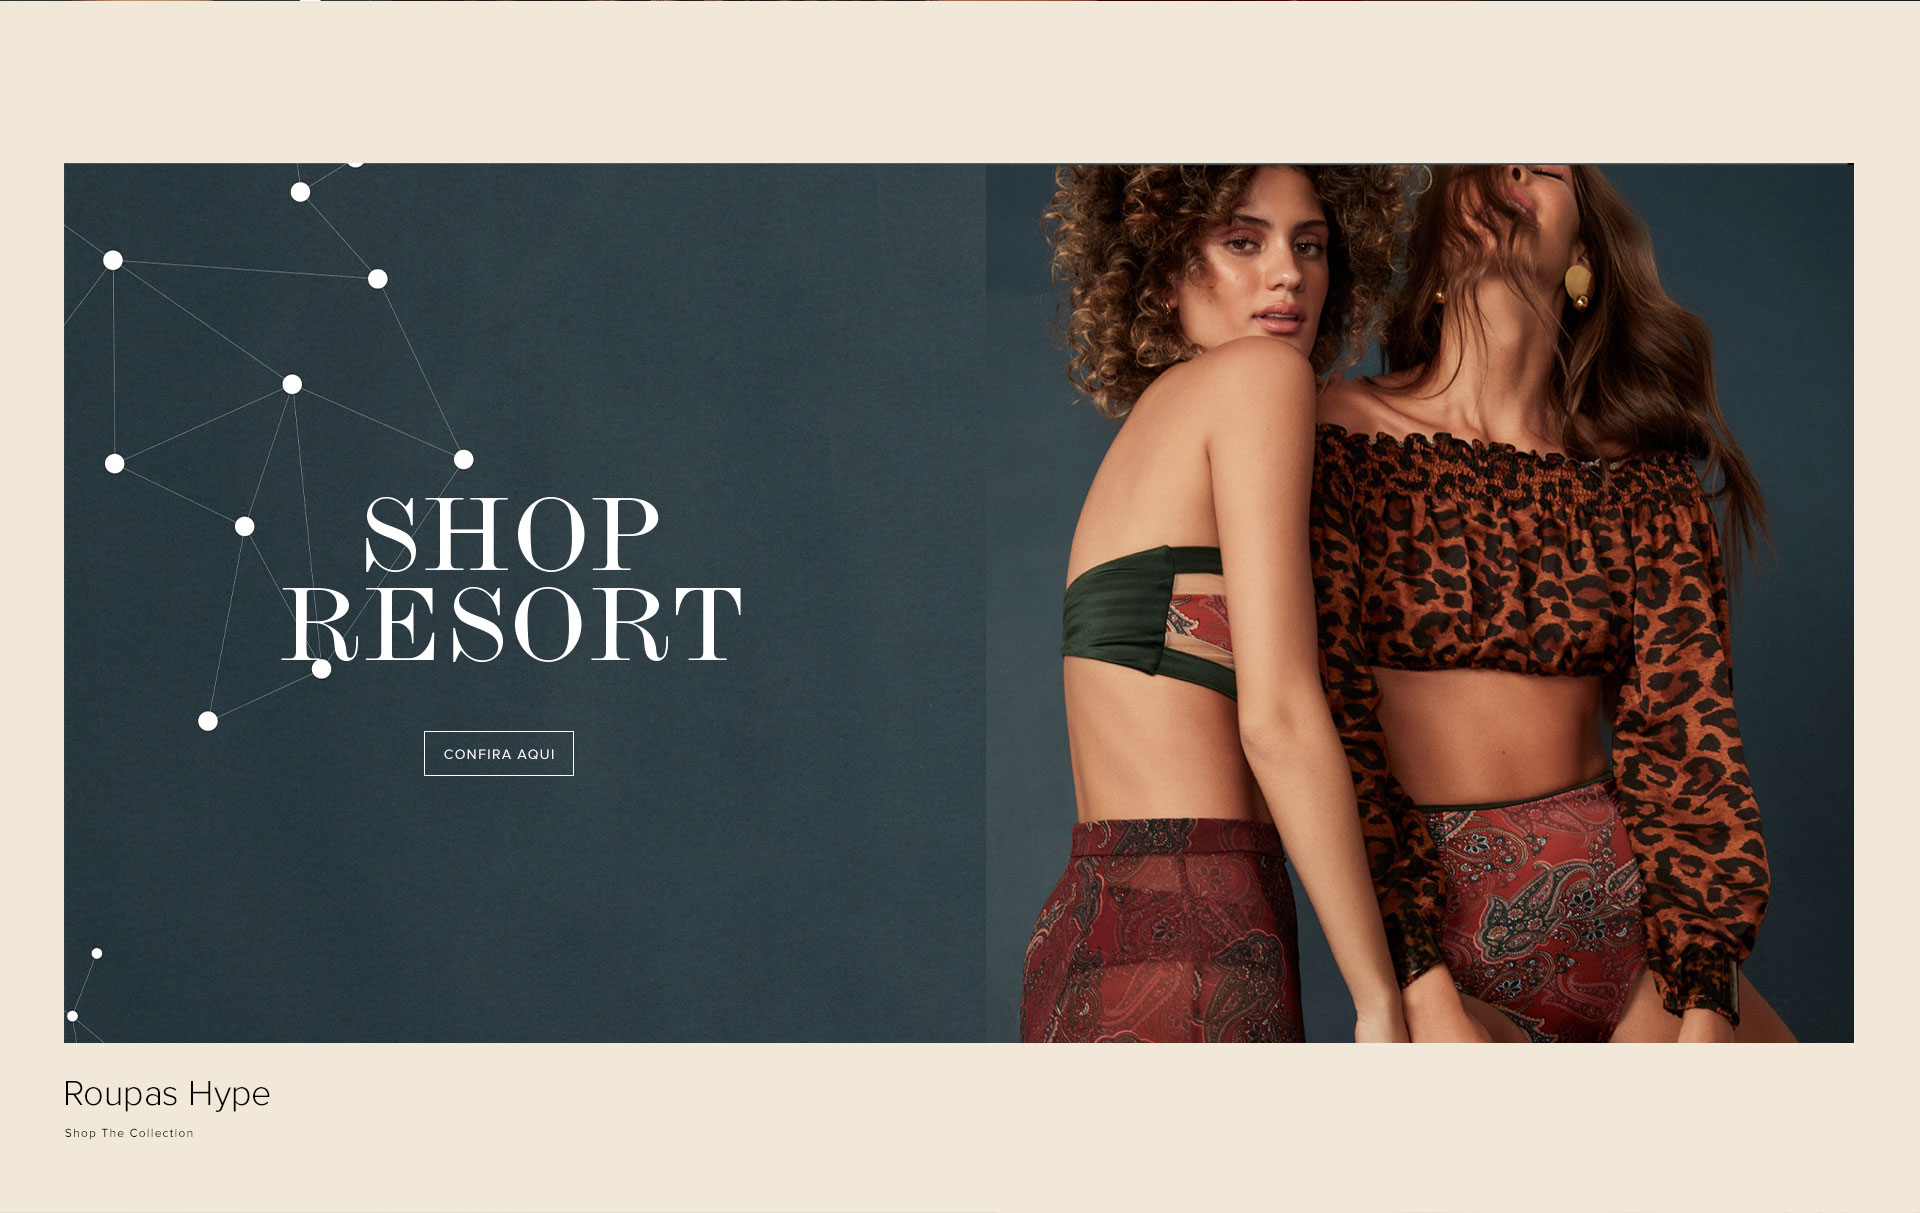 Shop Resort